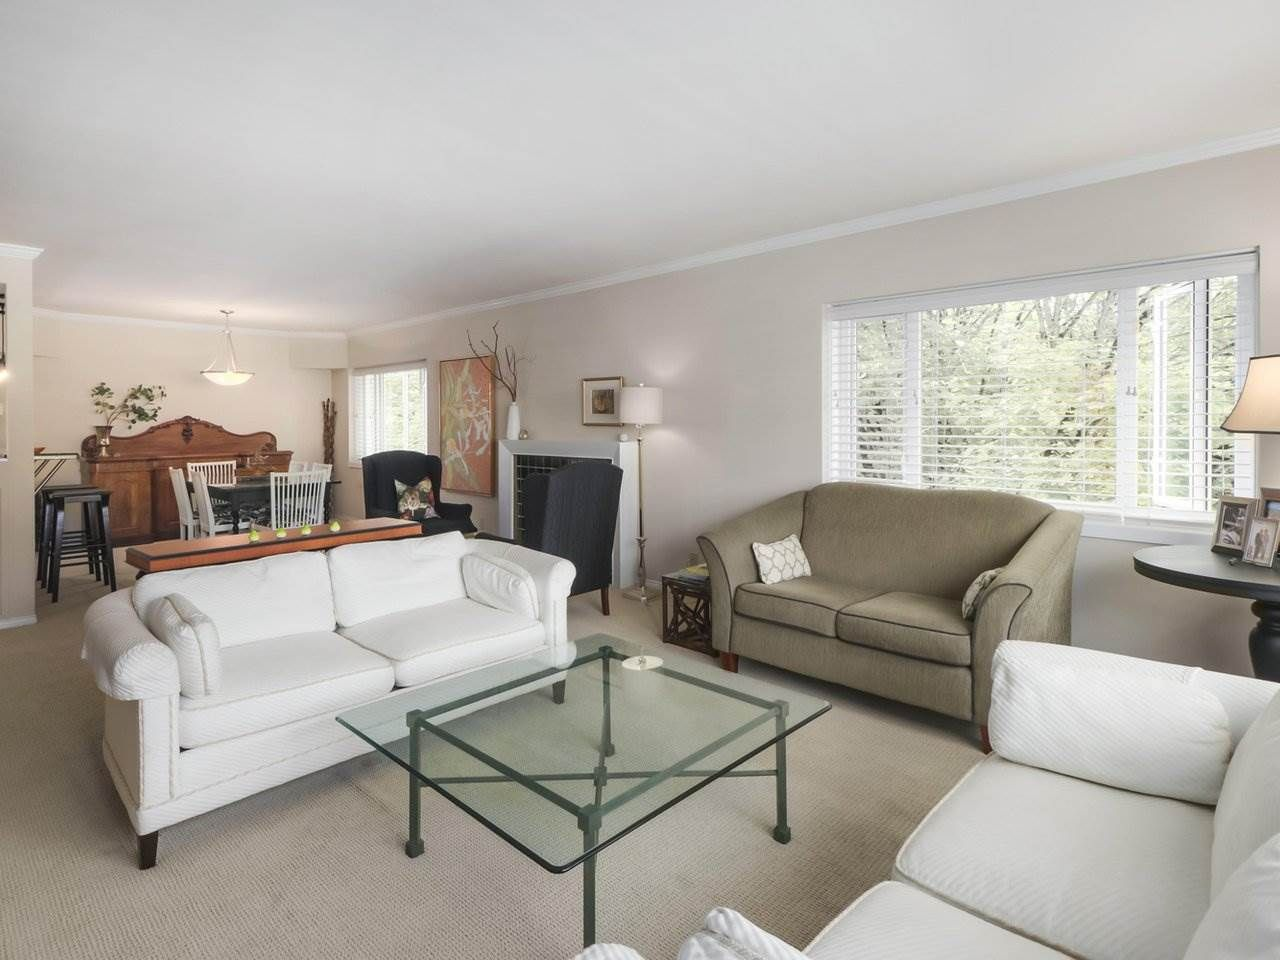 """Main Photo: 201 1595 W 14TH Avenue in Vancouver: Fairview VW Condo for sale in """"Windsor Apartments"""" (Vancouver West)  : MLS®# R2488513"""